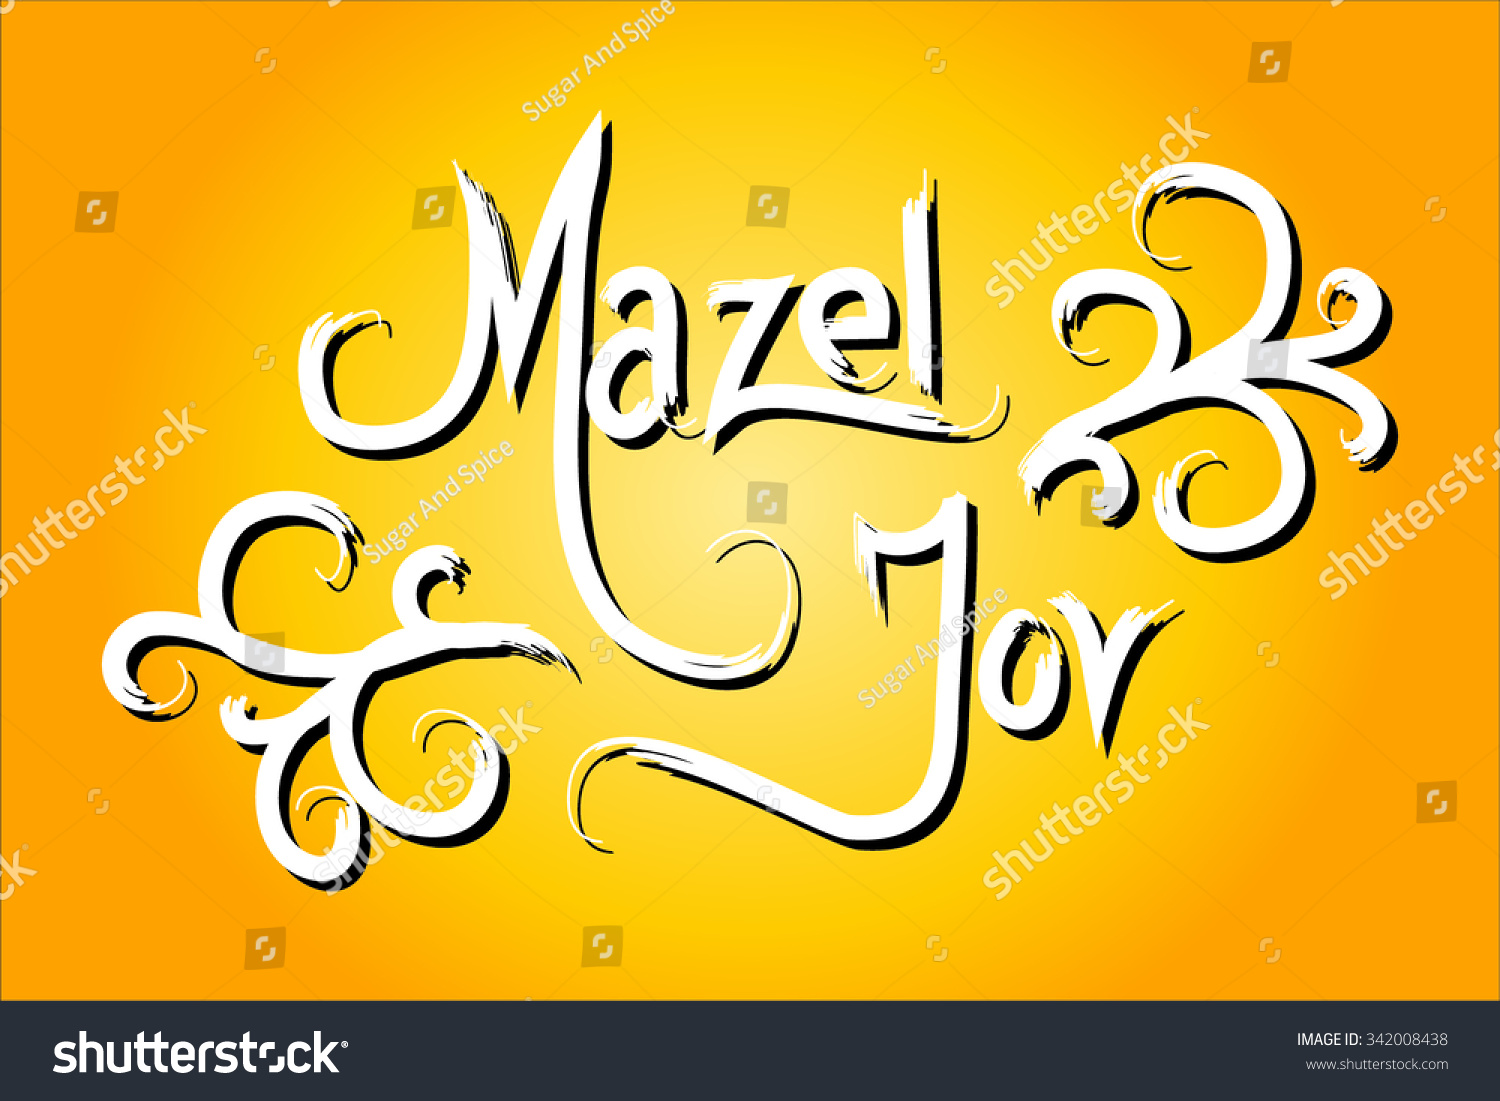 Mazel tov greeting hebrew words which stock vector royalty free mazel tov greeting hebrew words which mean good luck or m4hsunfo